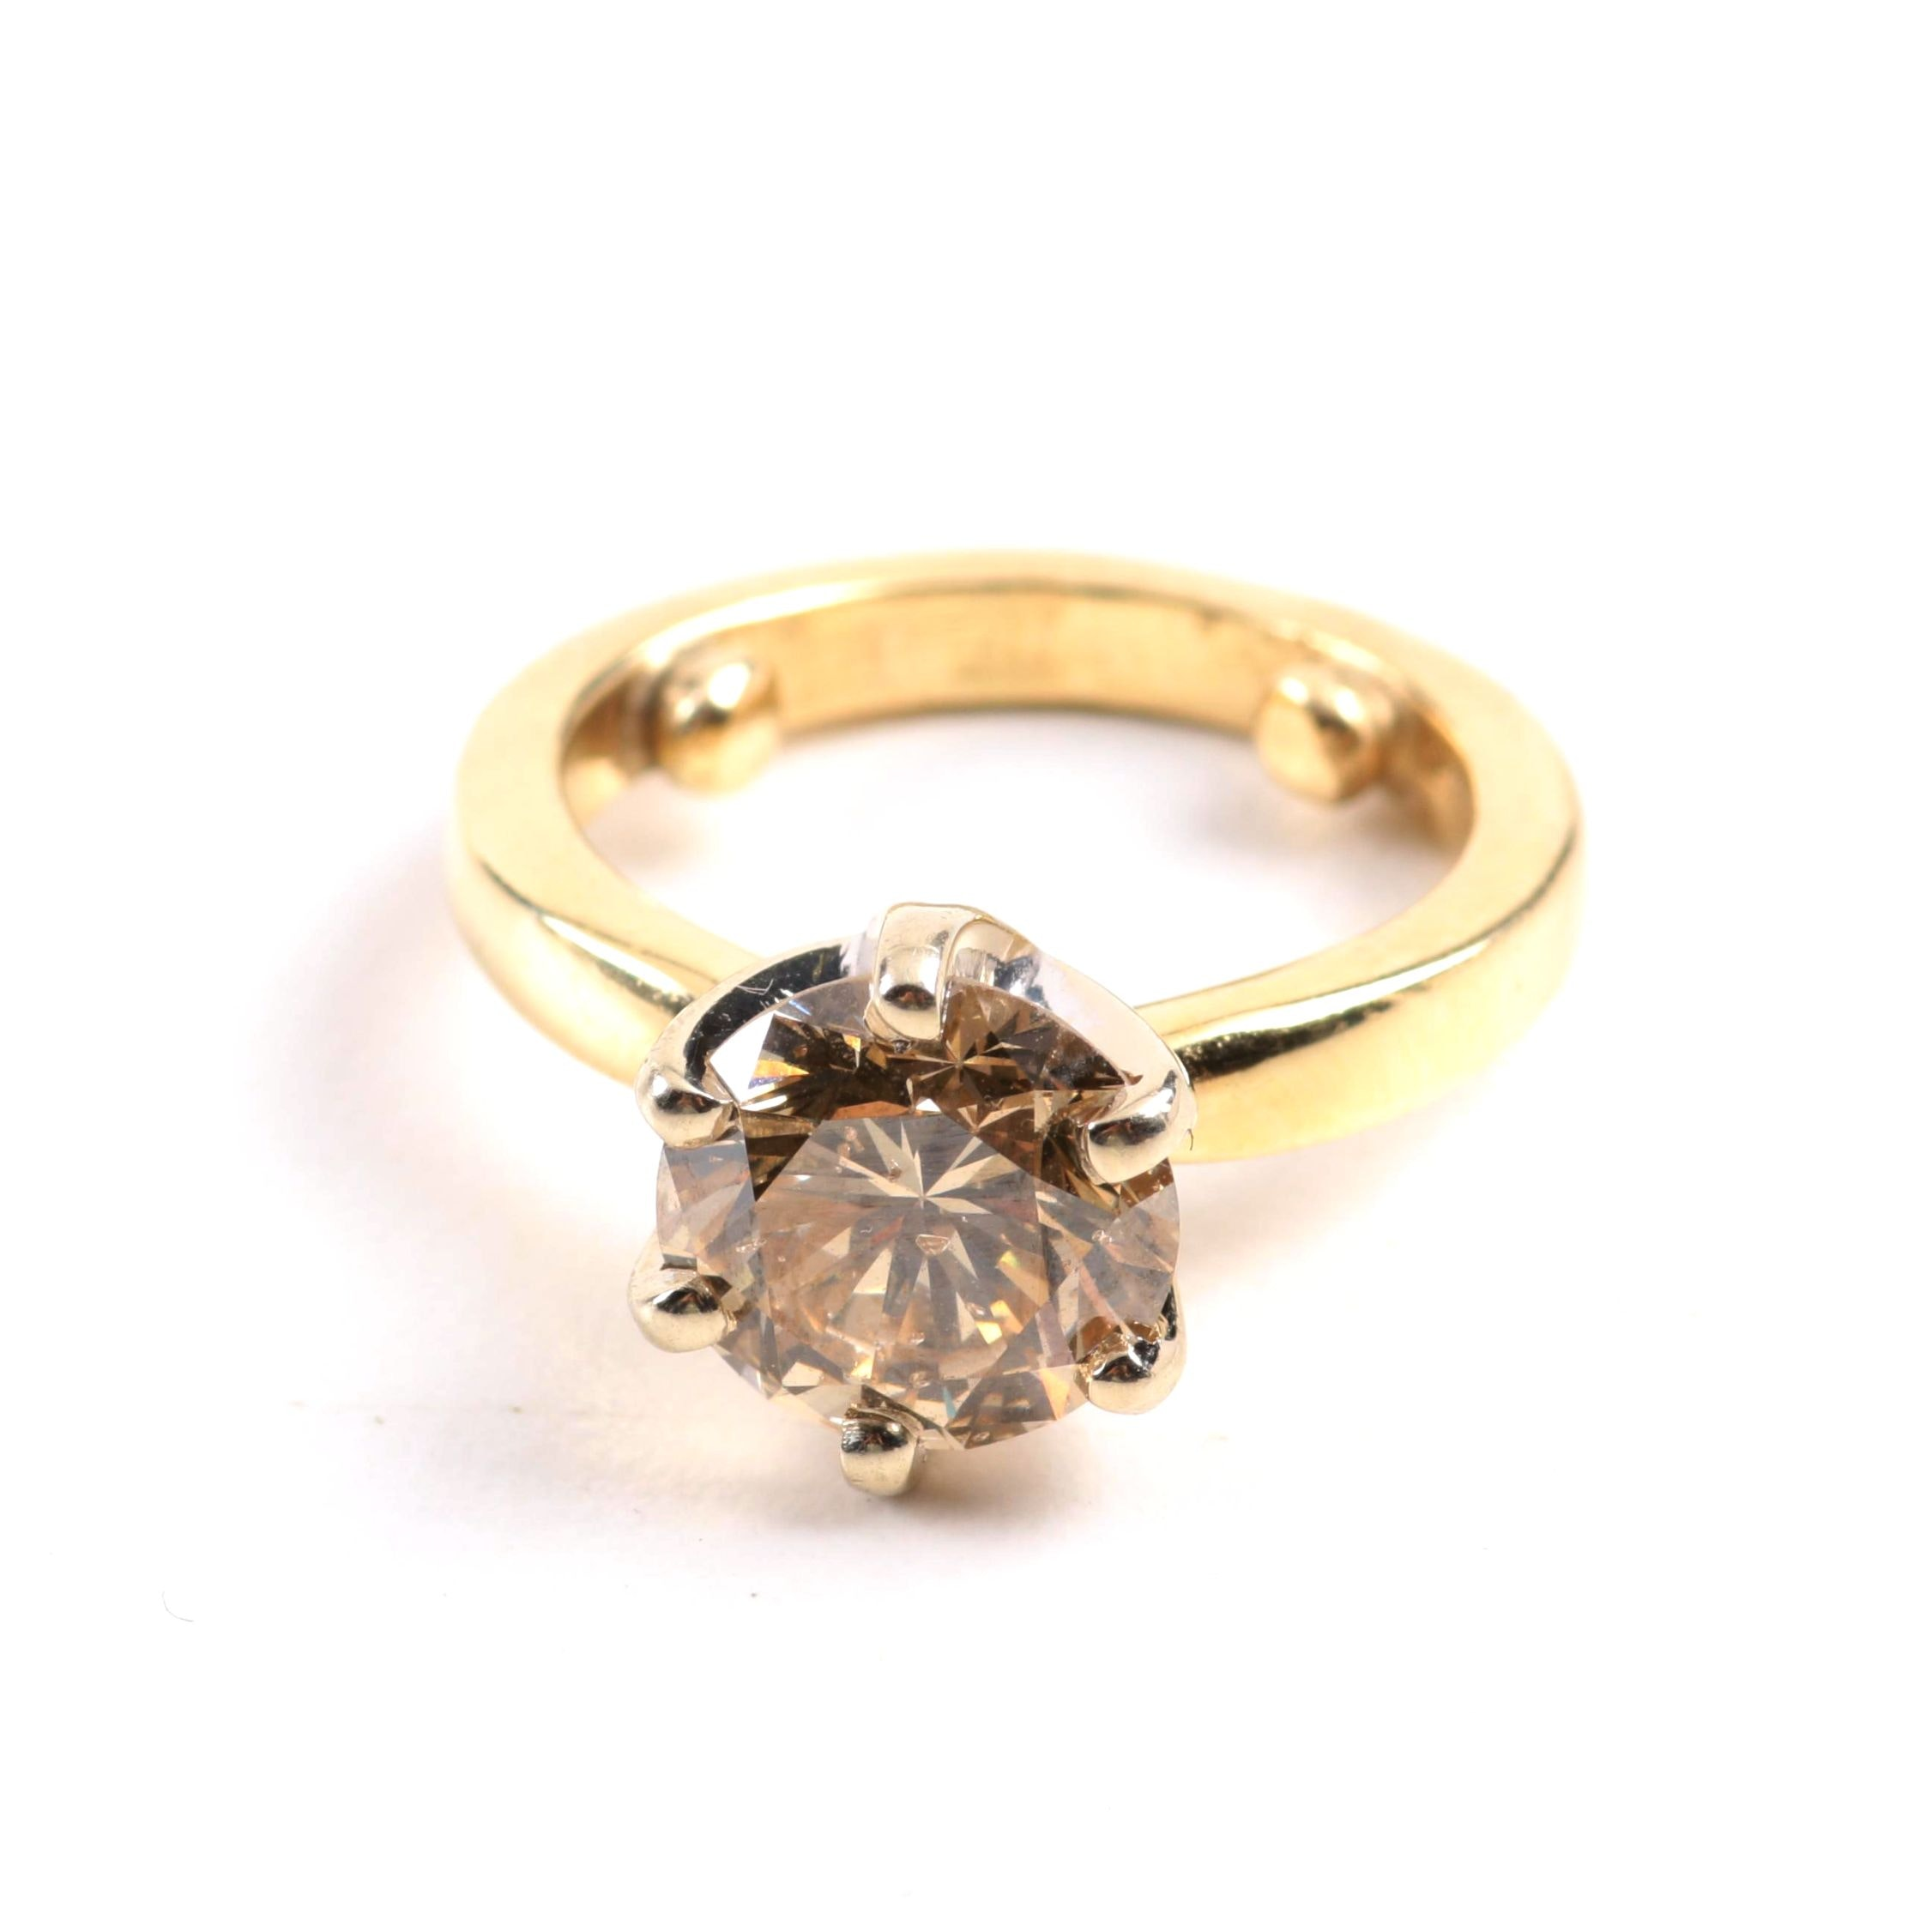 14K Yellow Gold 2.73 Carat Diamond Solitaire Ring